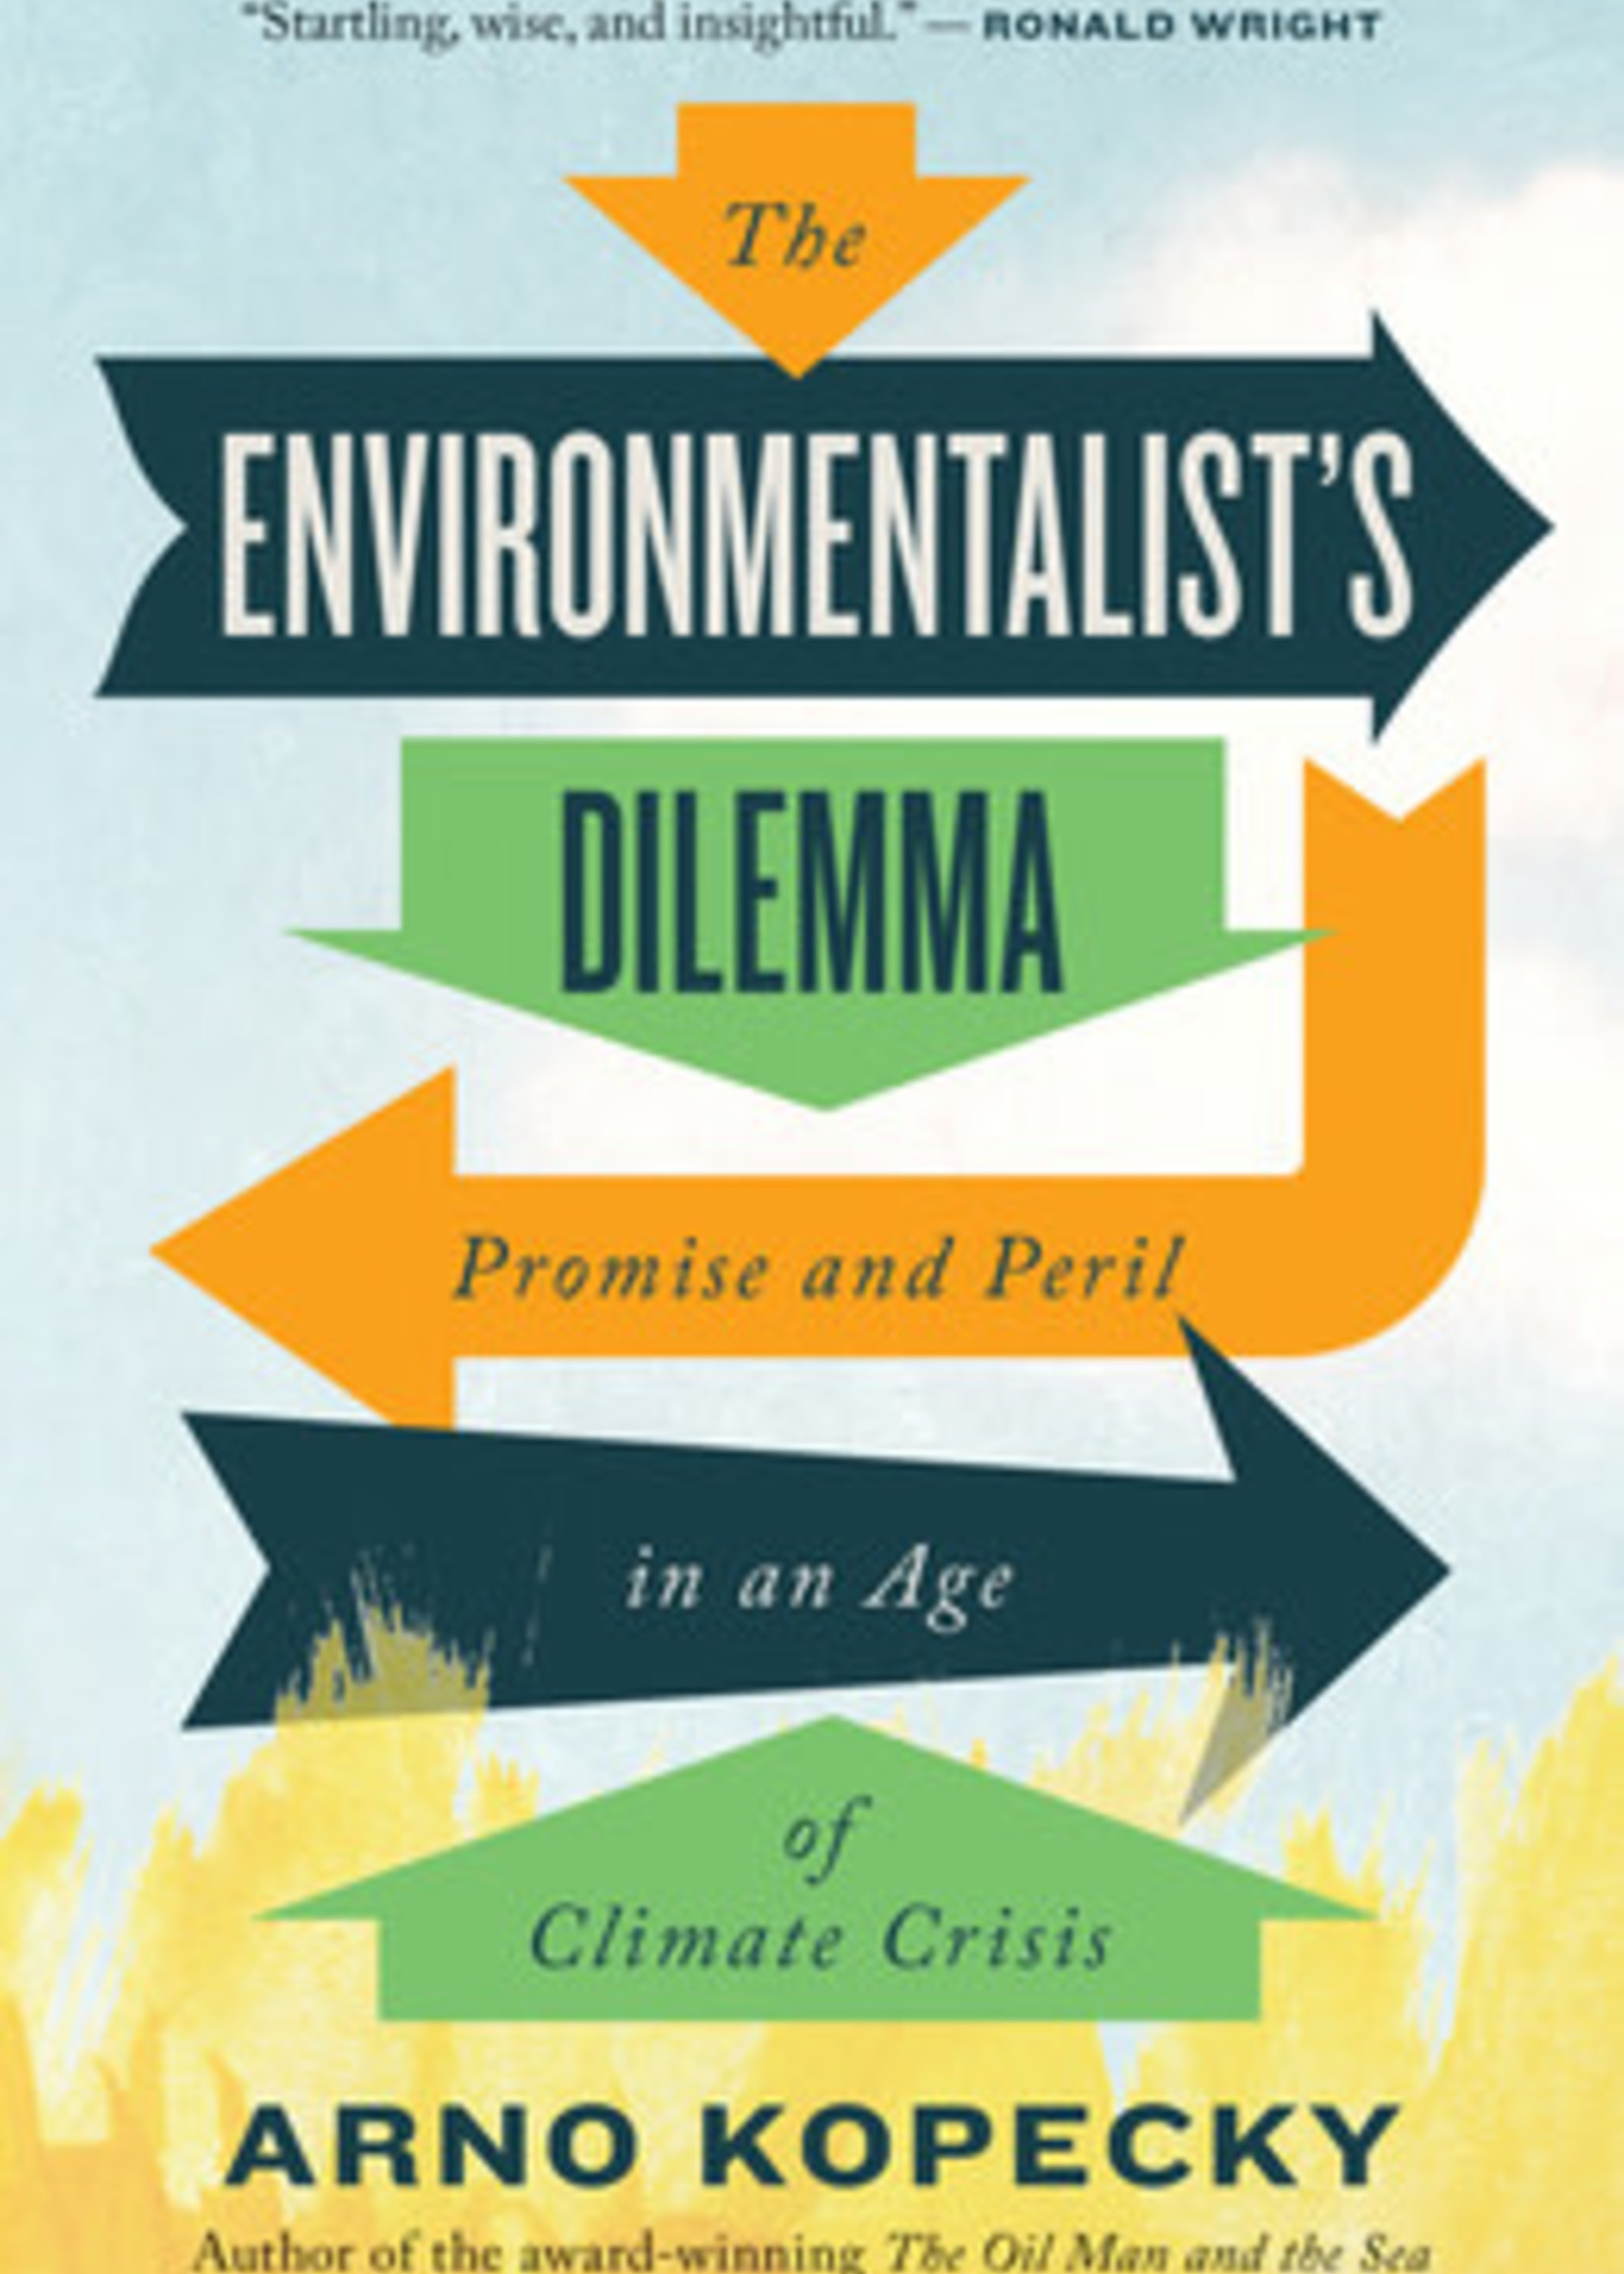 The Environmentalist's Dilemma: Promise and Peril in an Age of Climate Crisis by Arno Kopecky